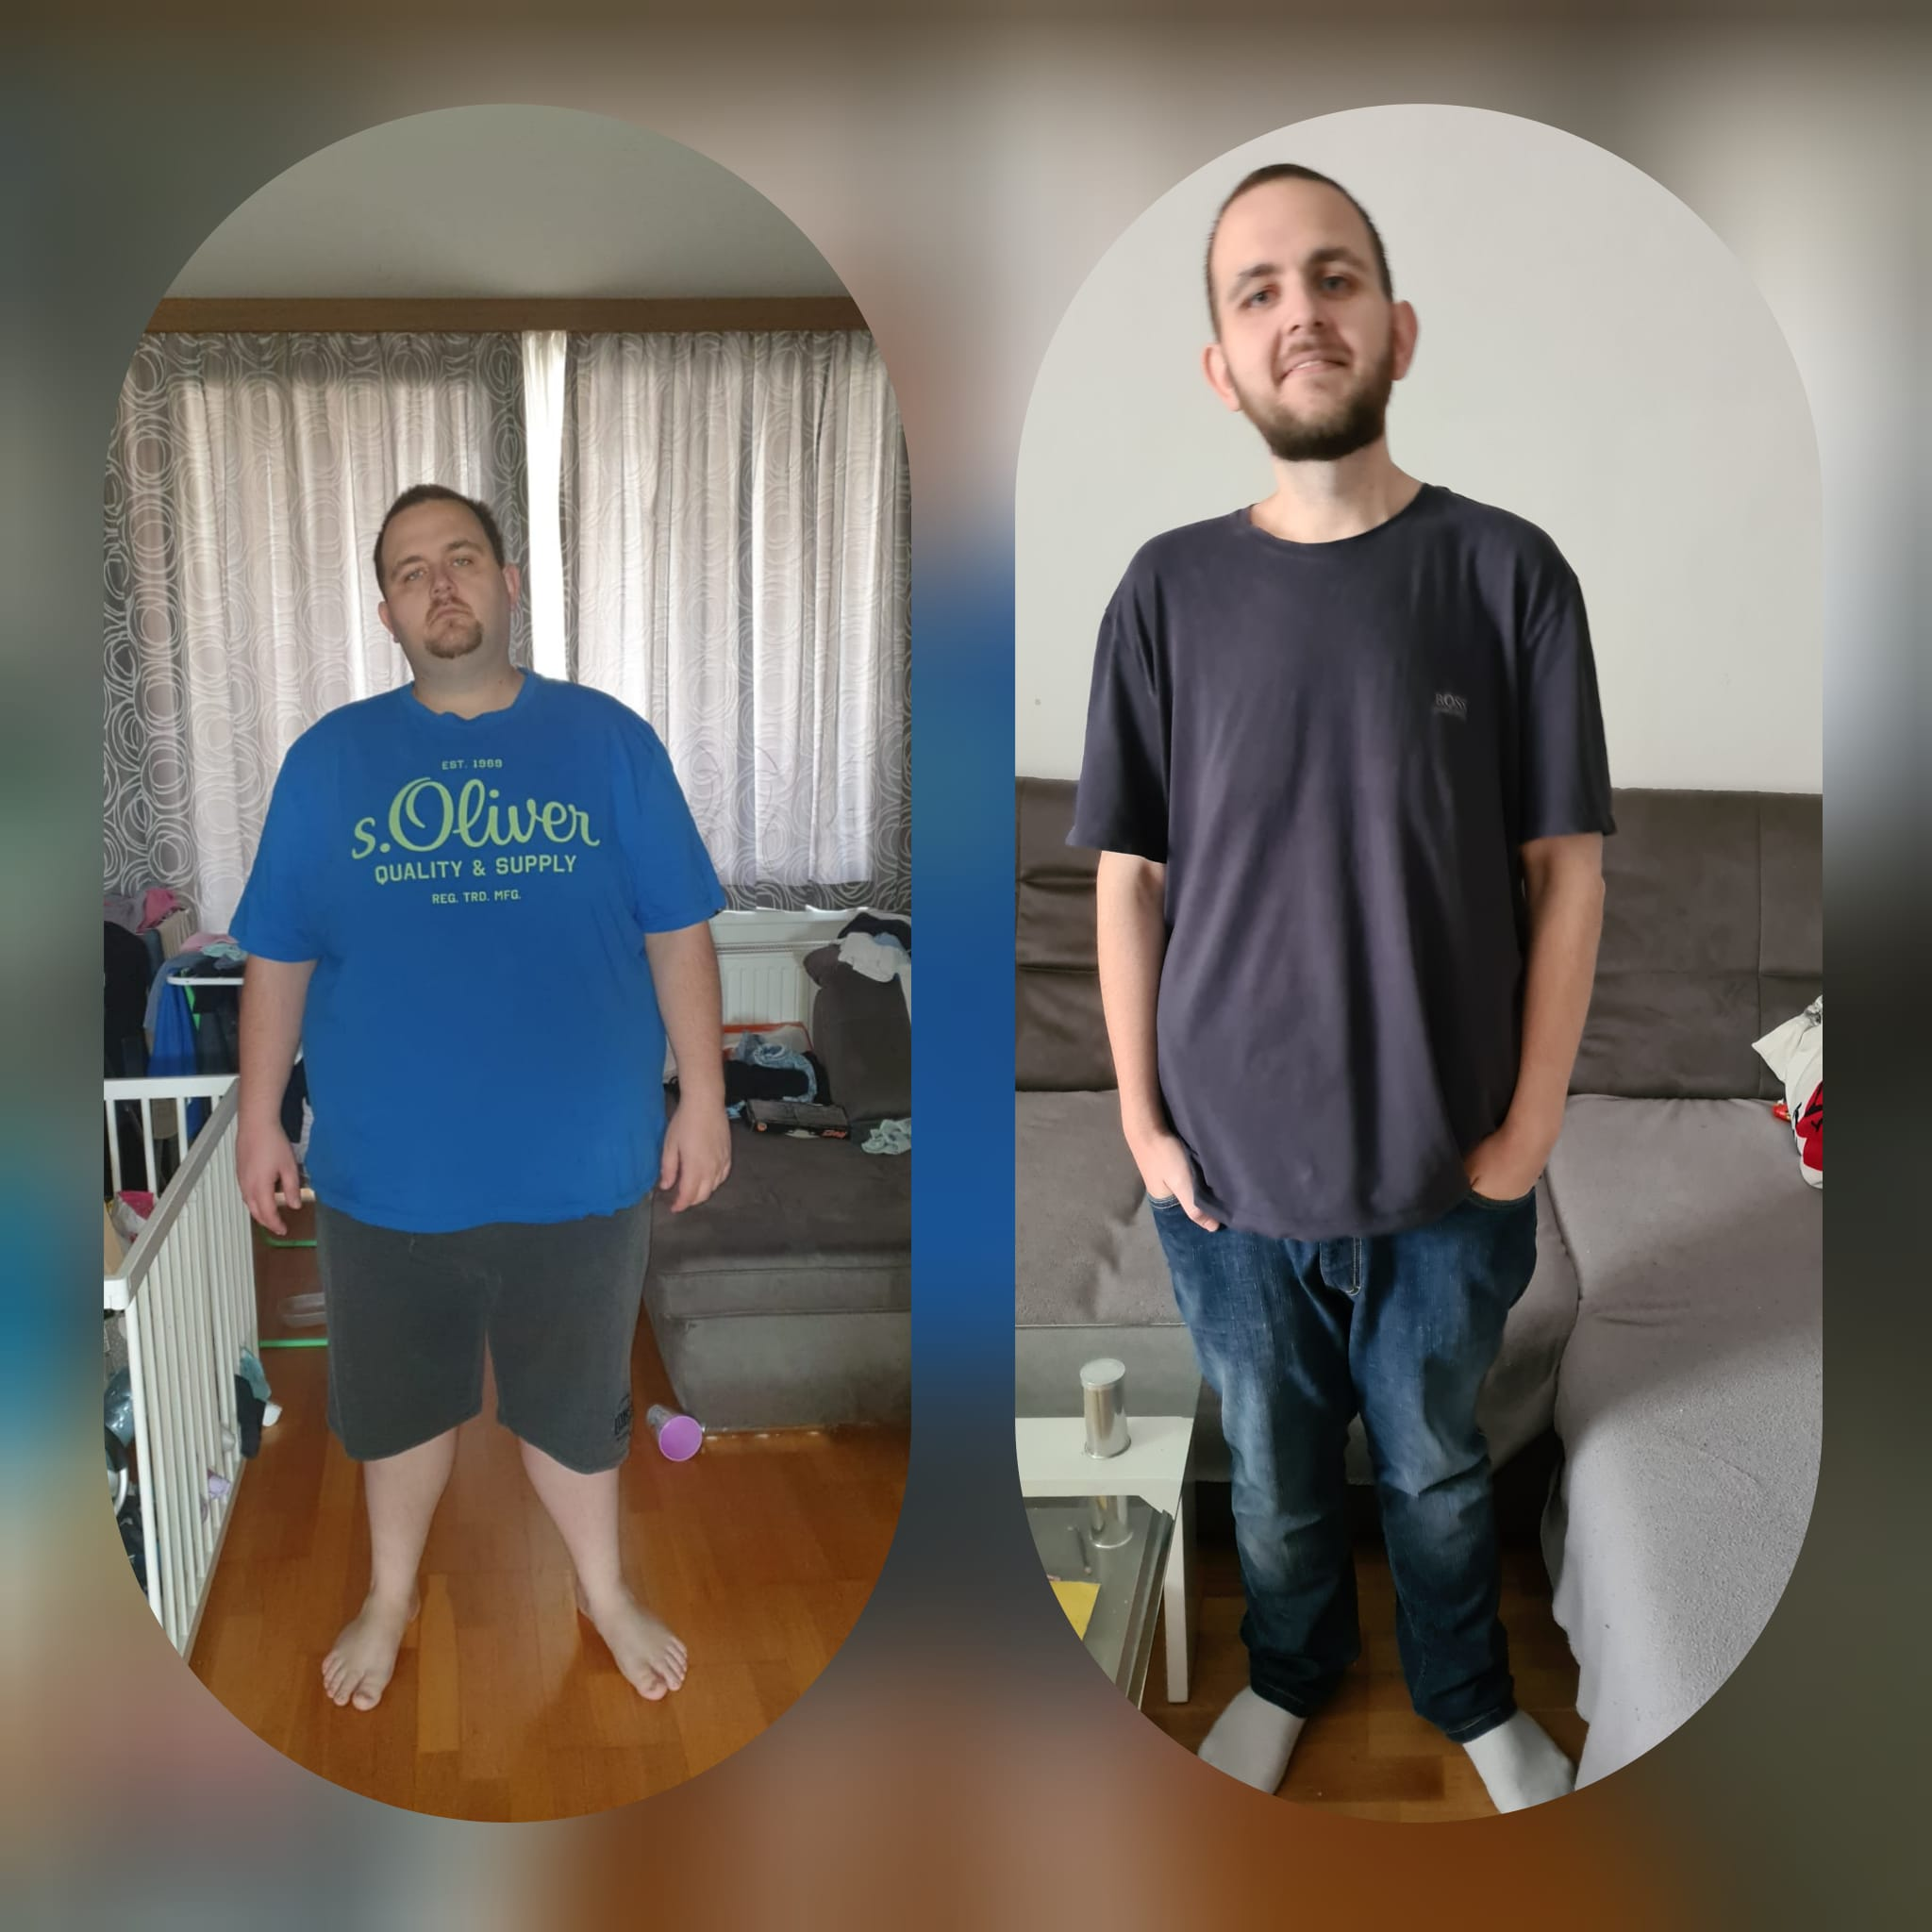 5 feet 8 Male 96 lbs Weight Loss Before and After 460 lbs to 364 lbs